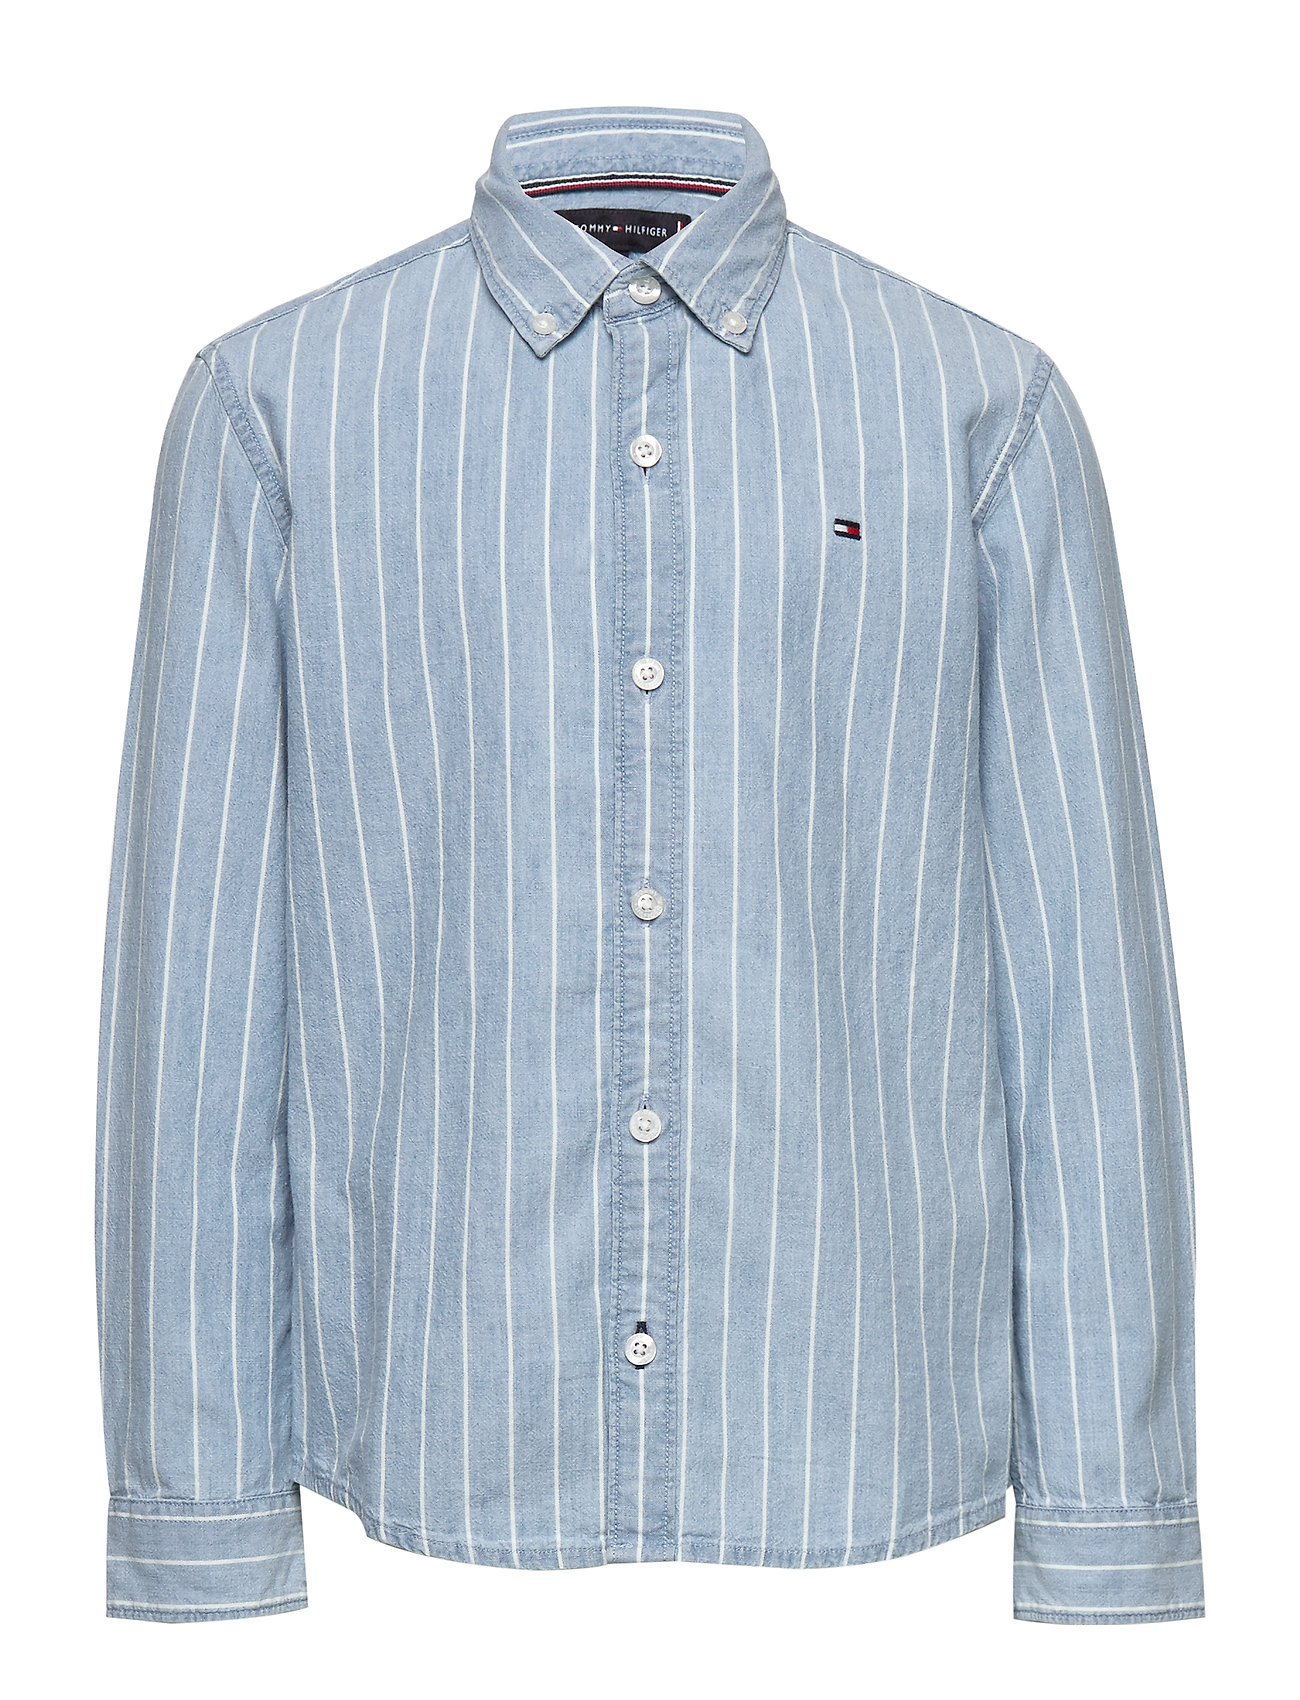 Tommy Hilfiger DENIM STRIPE SHIRT L/S - DENIM LIGHT 01